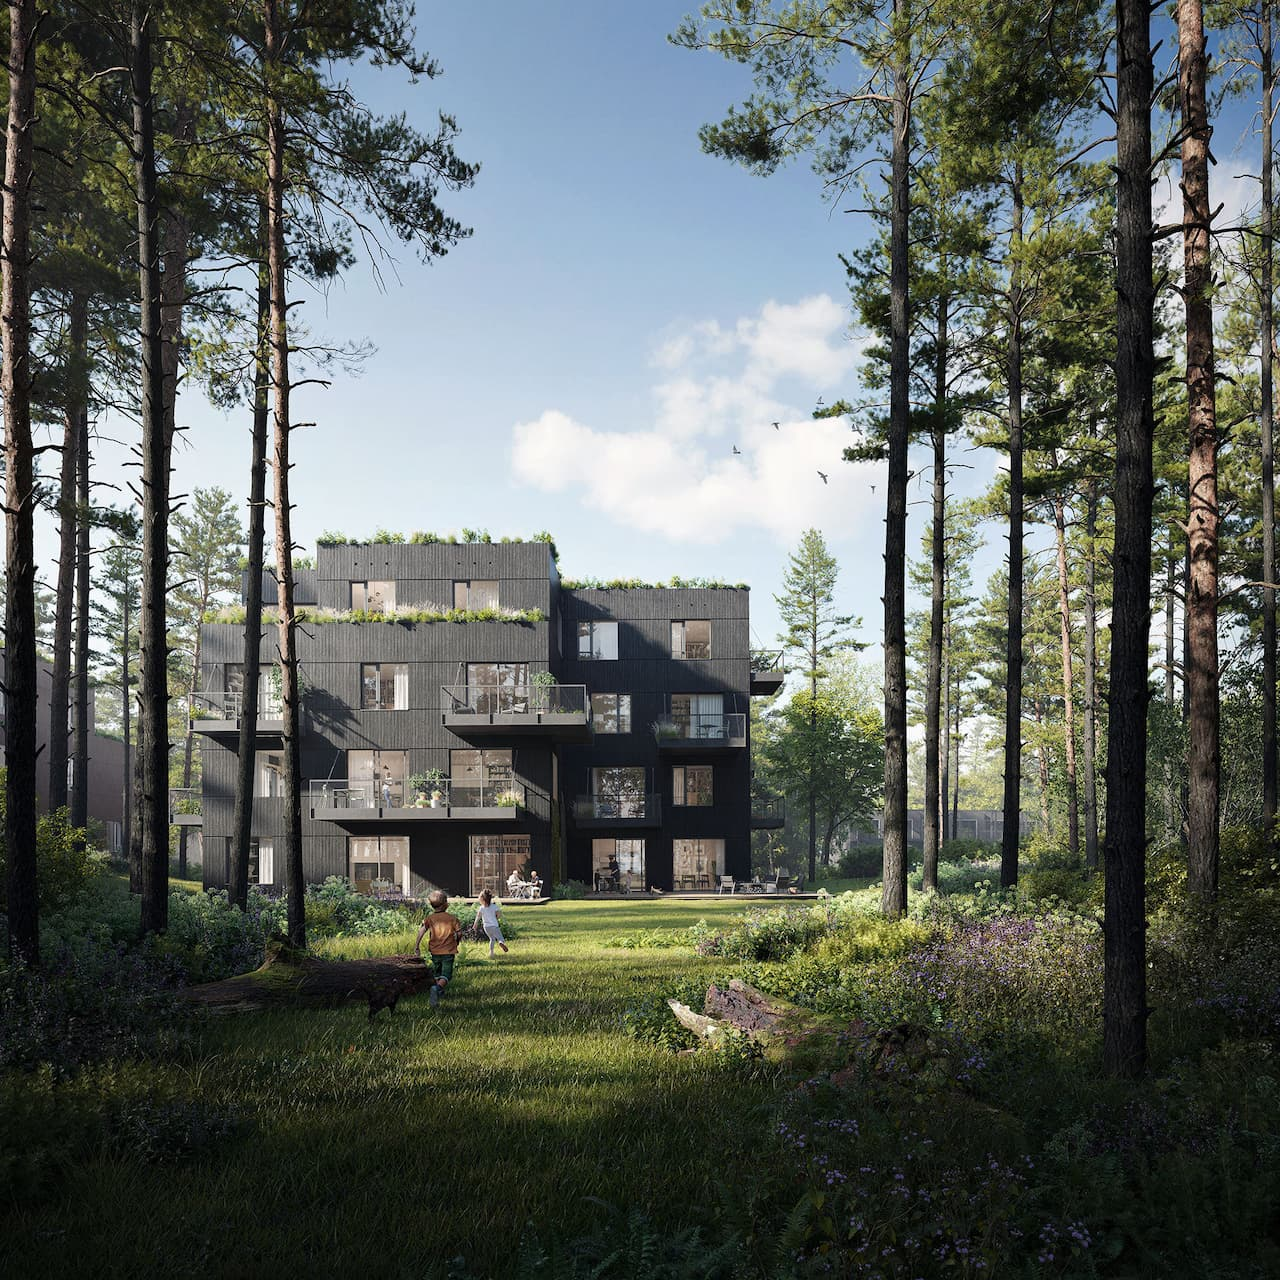 Firmly embedded in the historic Nimmerdor forest in Amersfoort, Common Woods redefines what it means for people to live in harmony with nature. We designed this visionary neighbourhood and all 56 circular homes in it with an eye for existing ecology, social inclusion and high quality of life. Each home and the neighbourhood as a whole is surrounded by a nature reserve rich in history and biodiversity and is designed based on the wishes of residents. It is set to be the most sustainable neighbourhood in Europe to date.